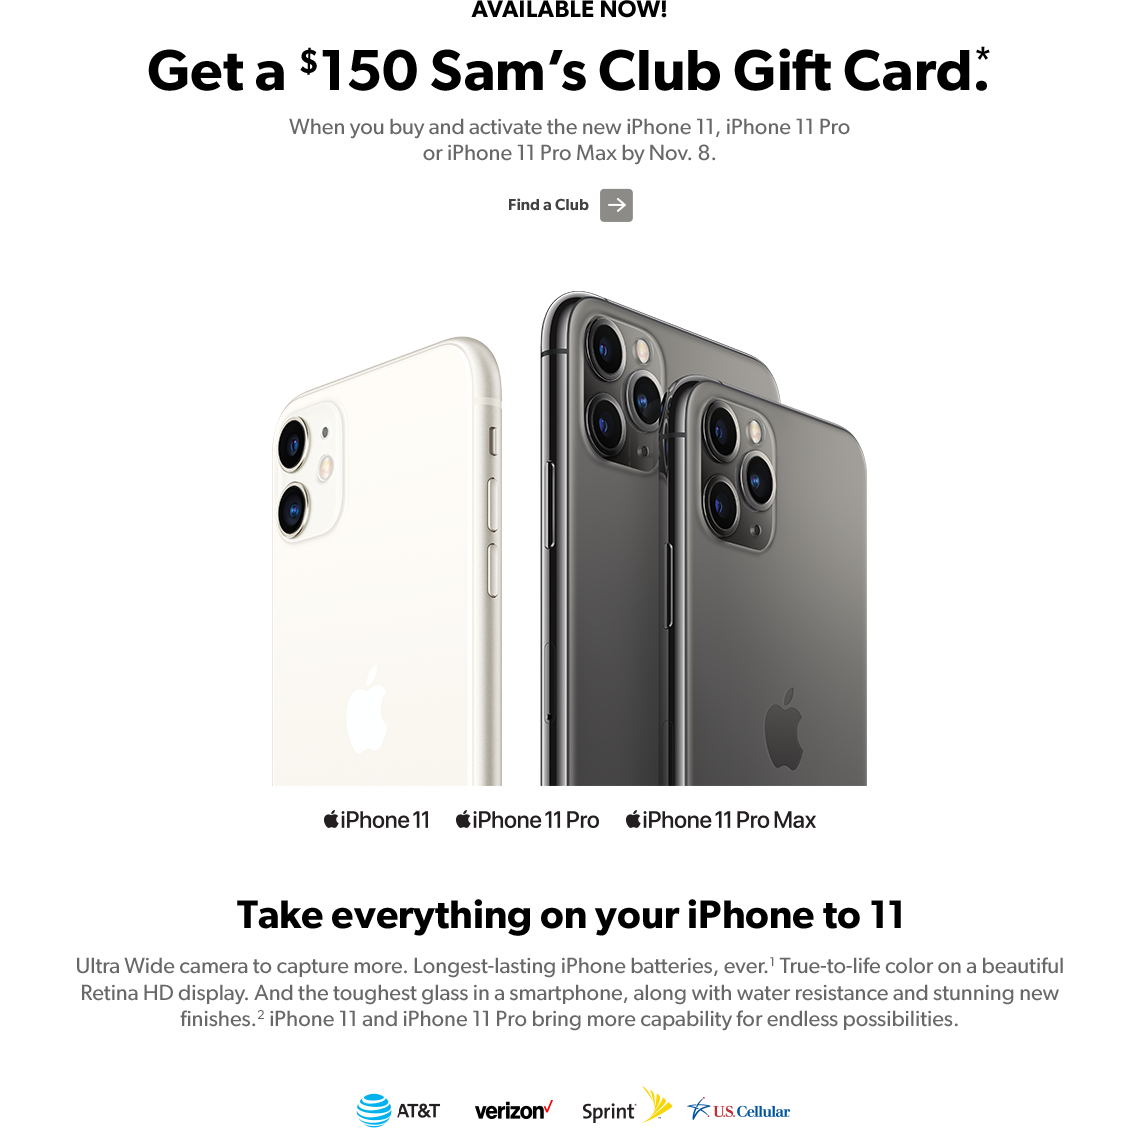 Sam's Club Gift Card iphone 11